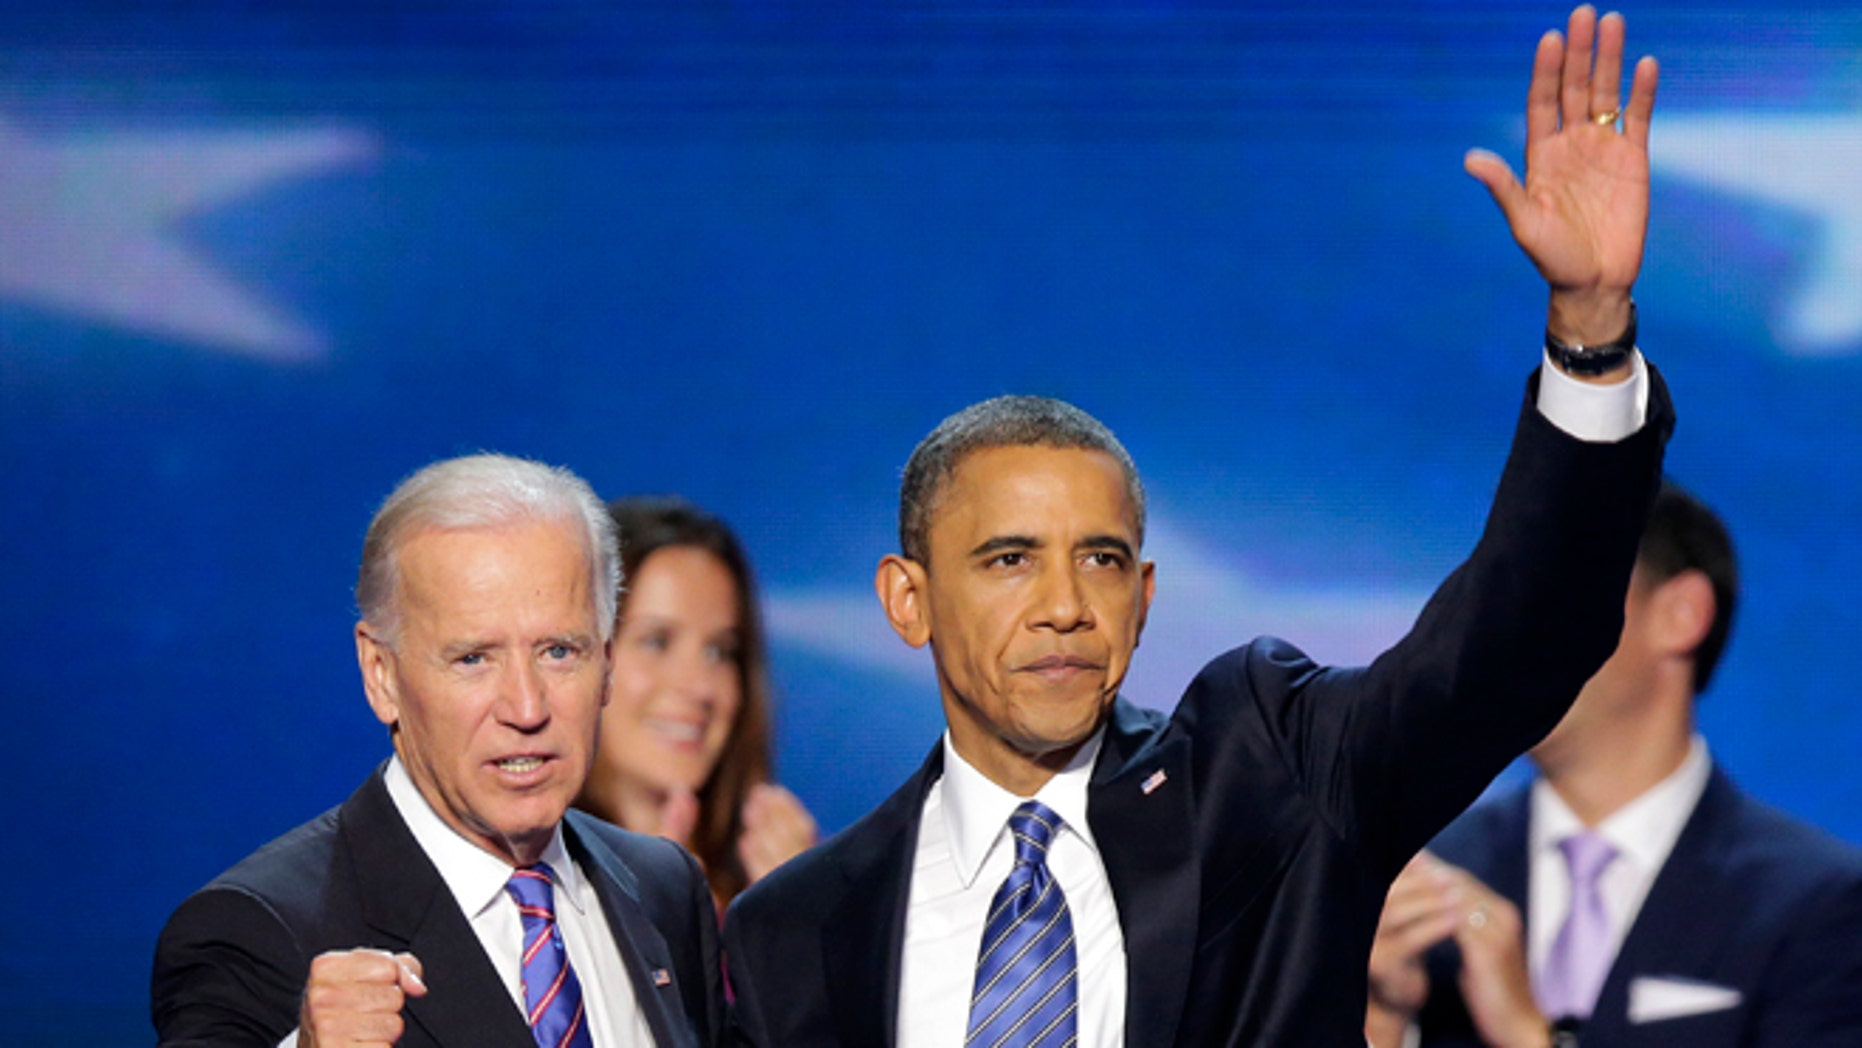 Sept. 6, 2012: Vice President Joe Biden and President Barack Obama wave to the delegates after President Obama's speech to the Democratic National Convention in Charlotte, N.C.